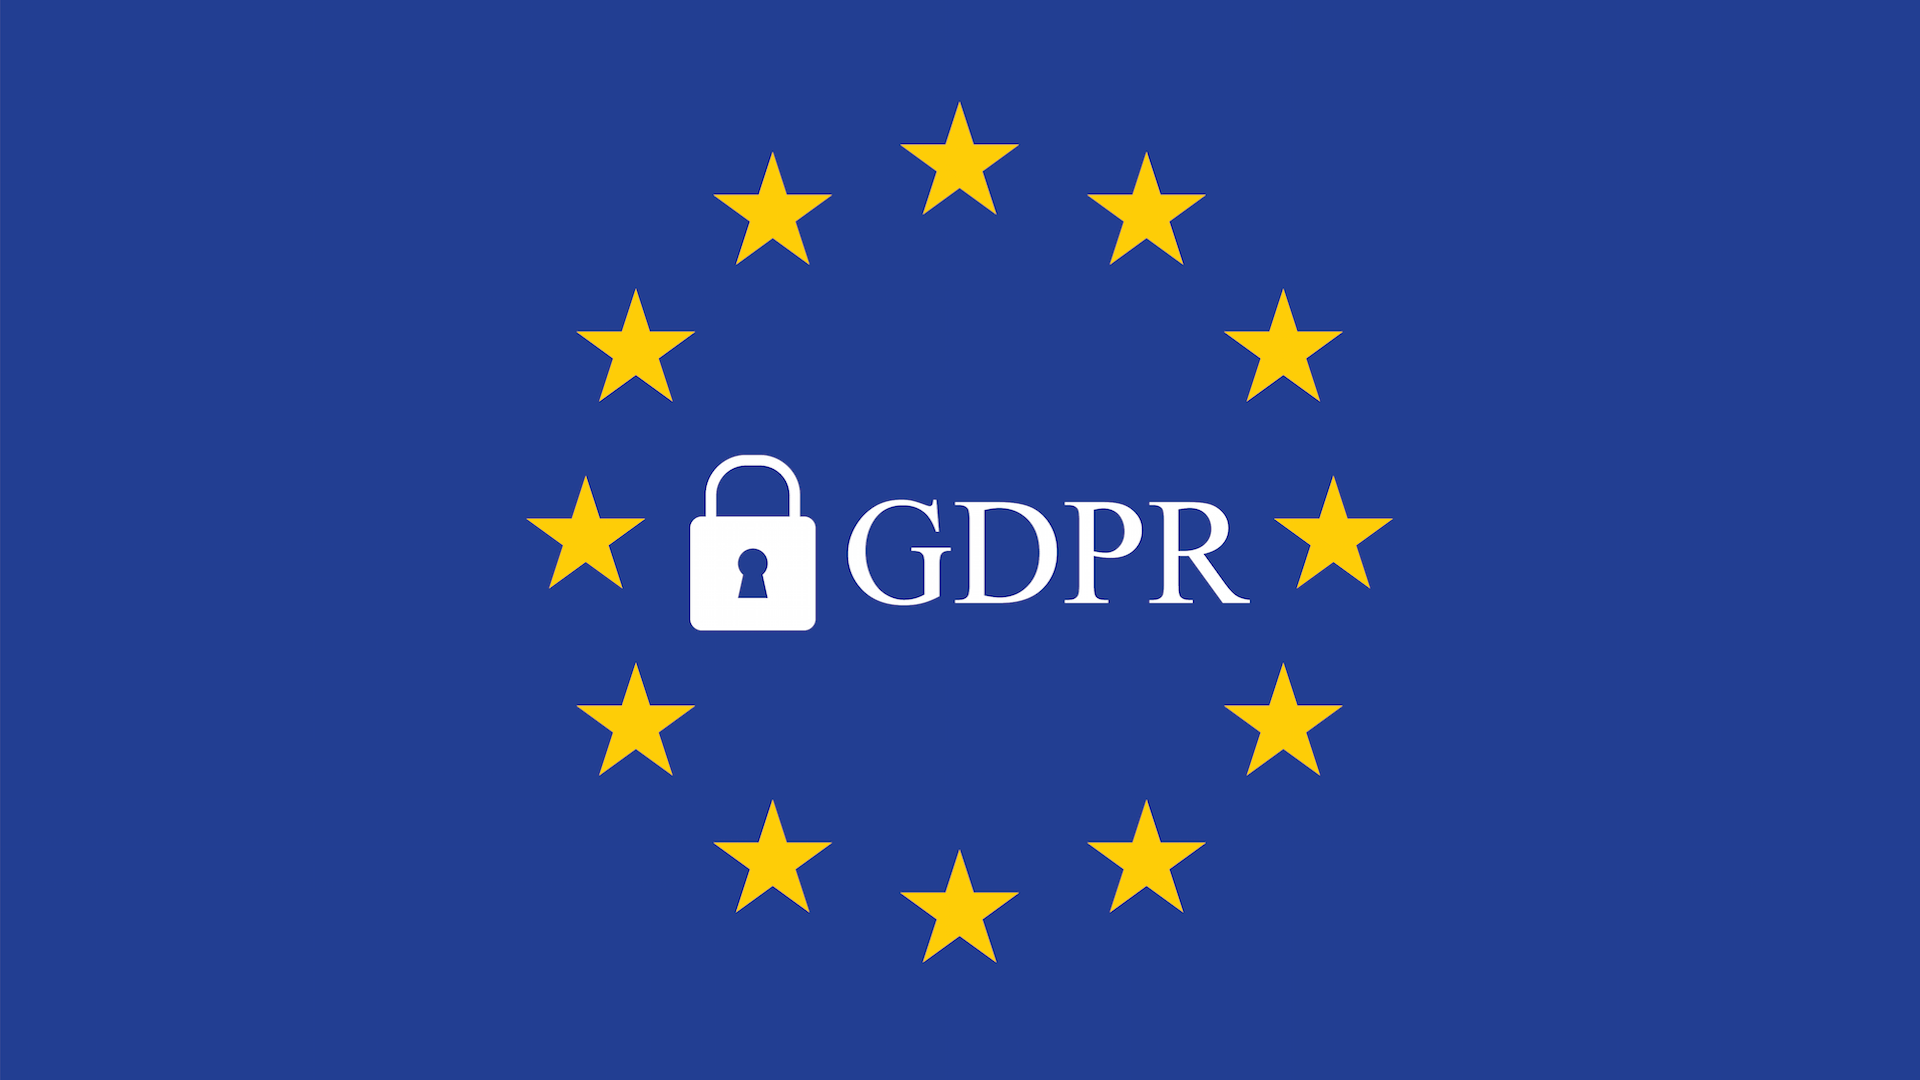 Accessibility, Trespass, and GDPR-ADASure- 							1035